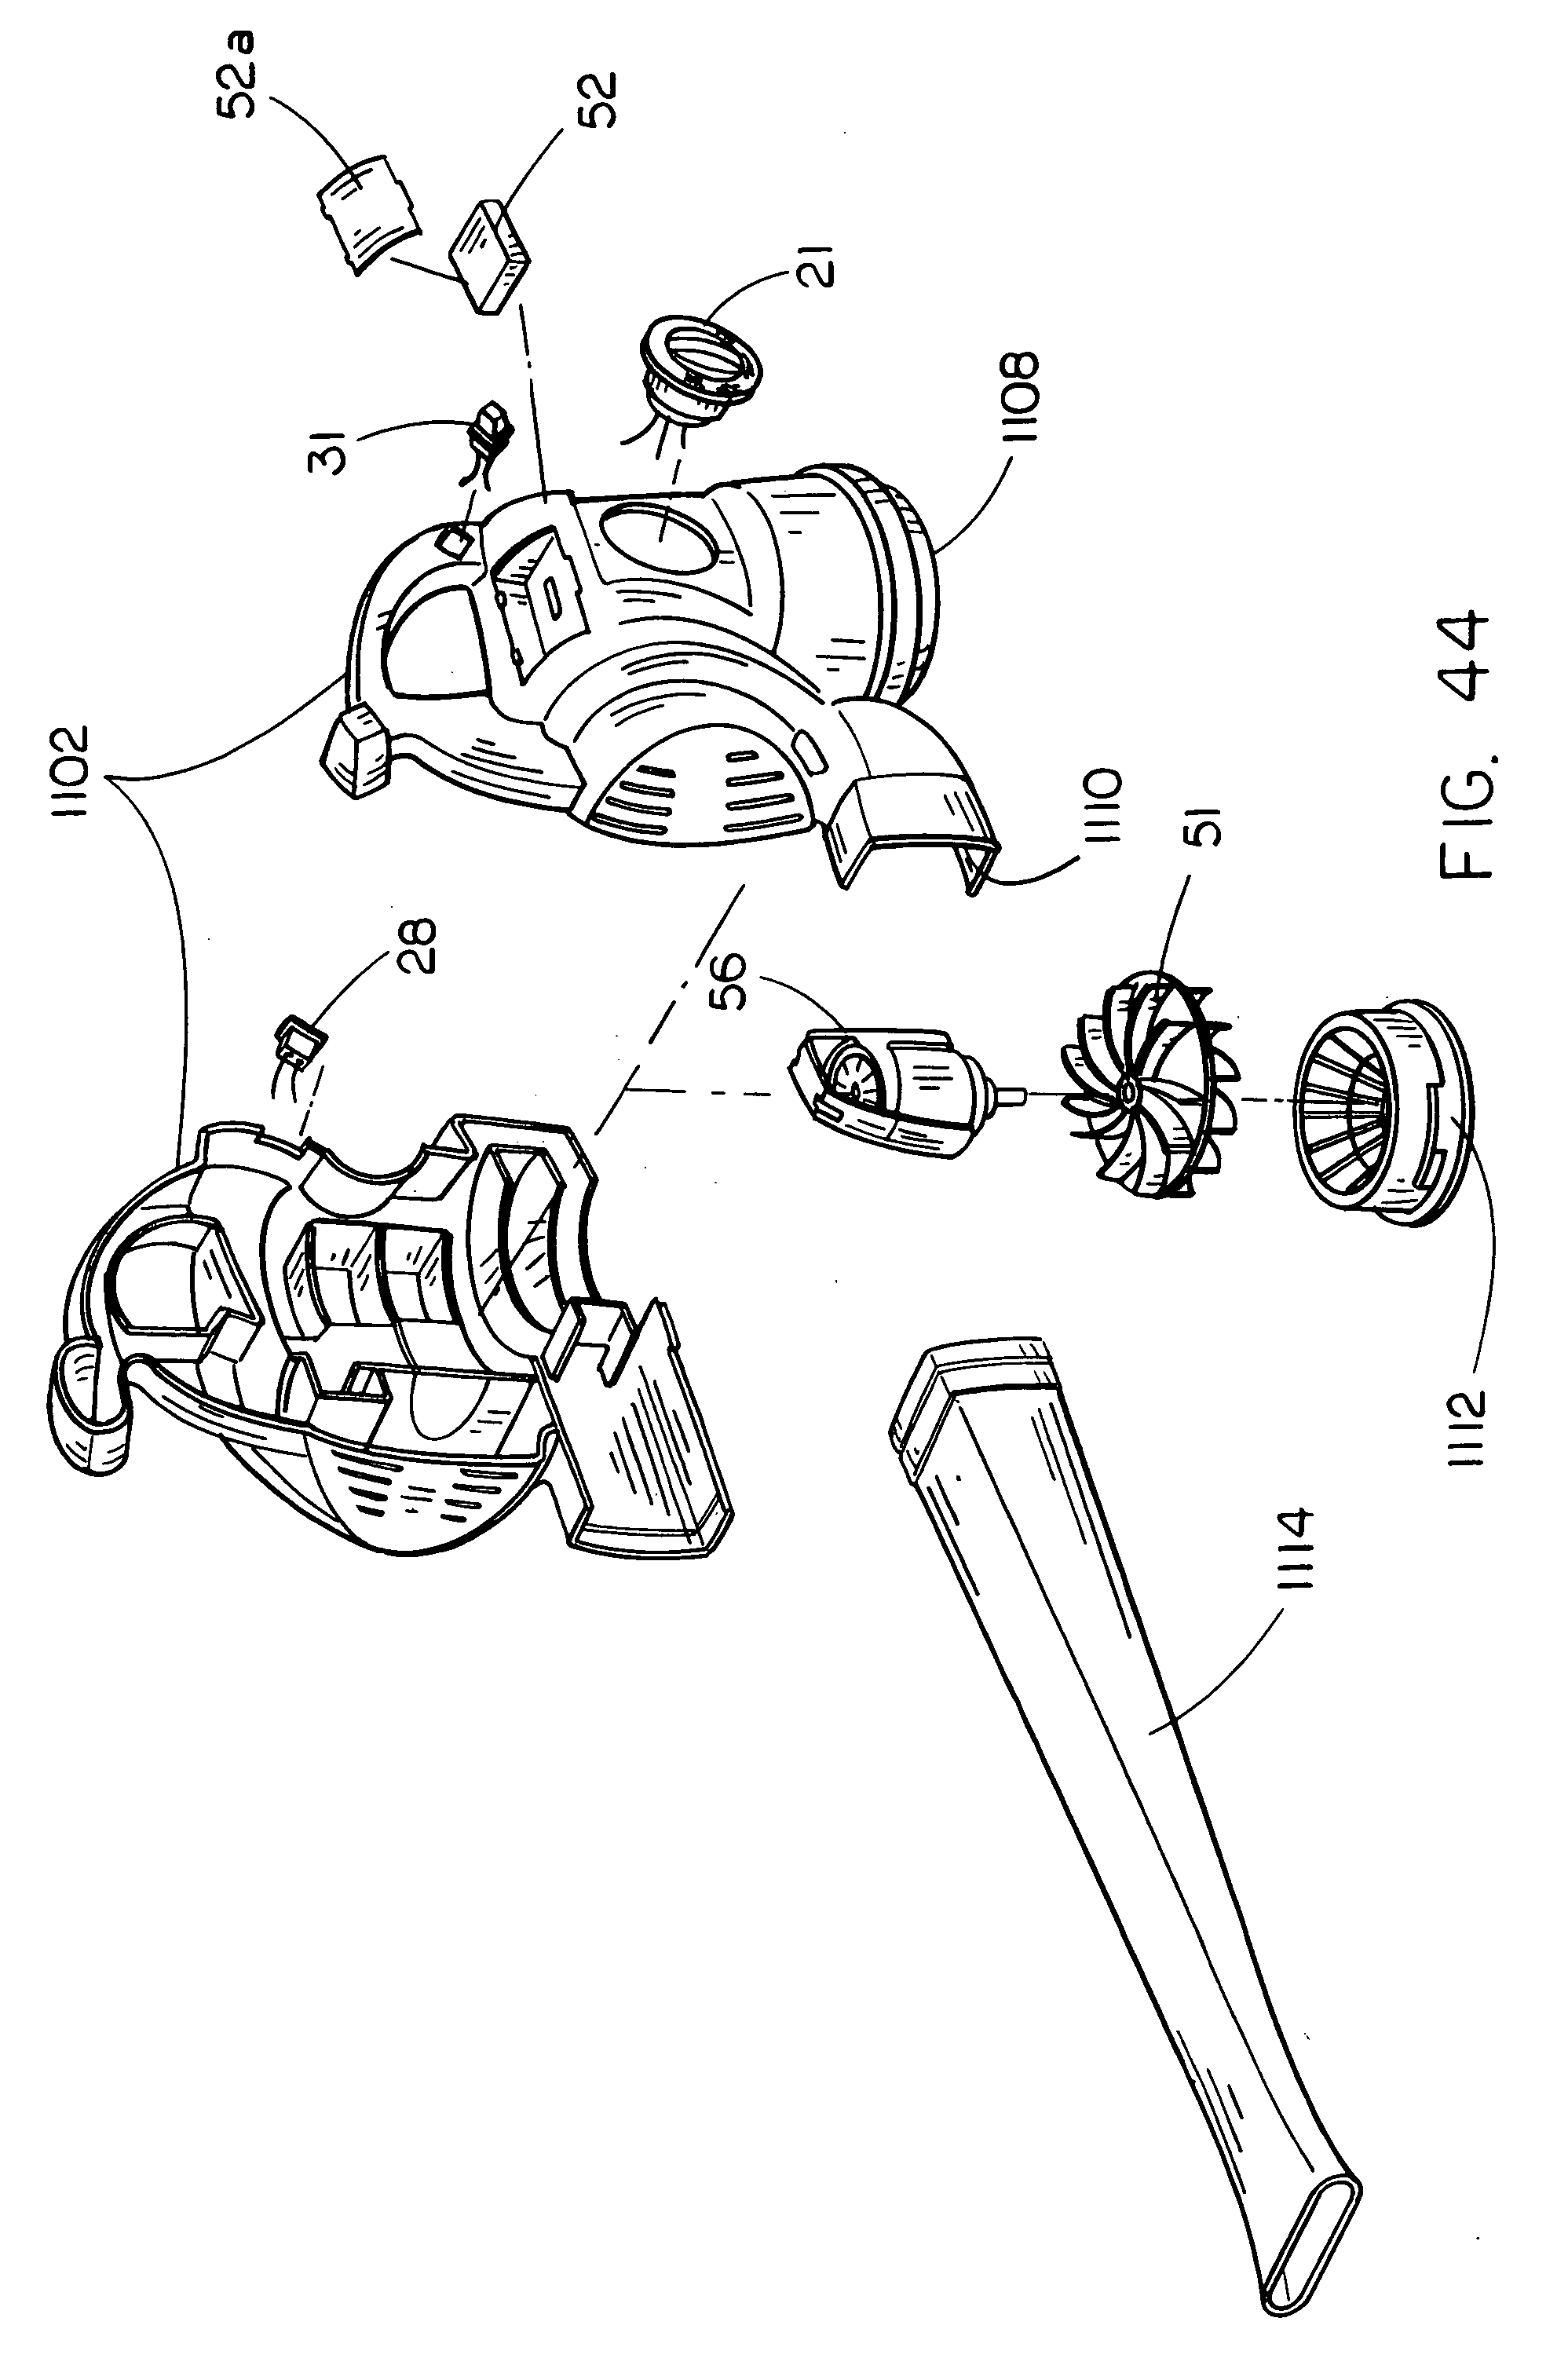 patent us20080284363 hybrid electric cleaning device patents 18V DC Motor patent drawing